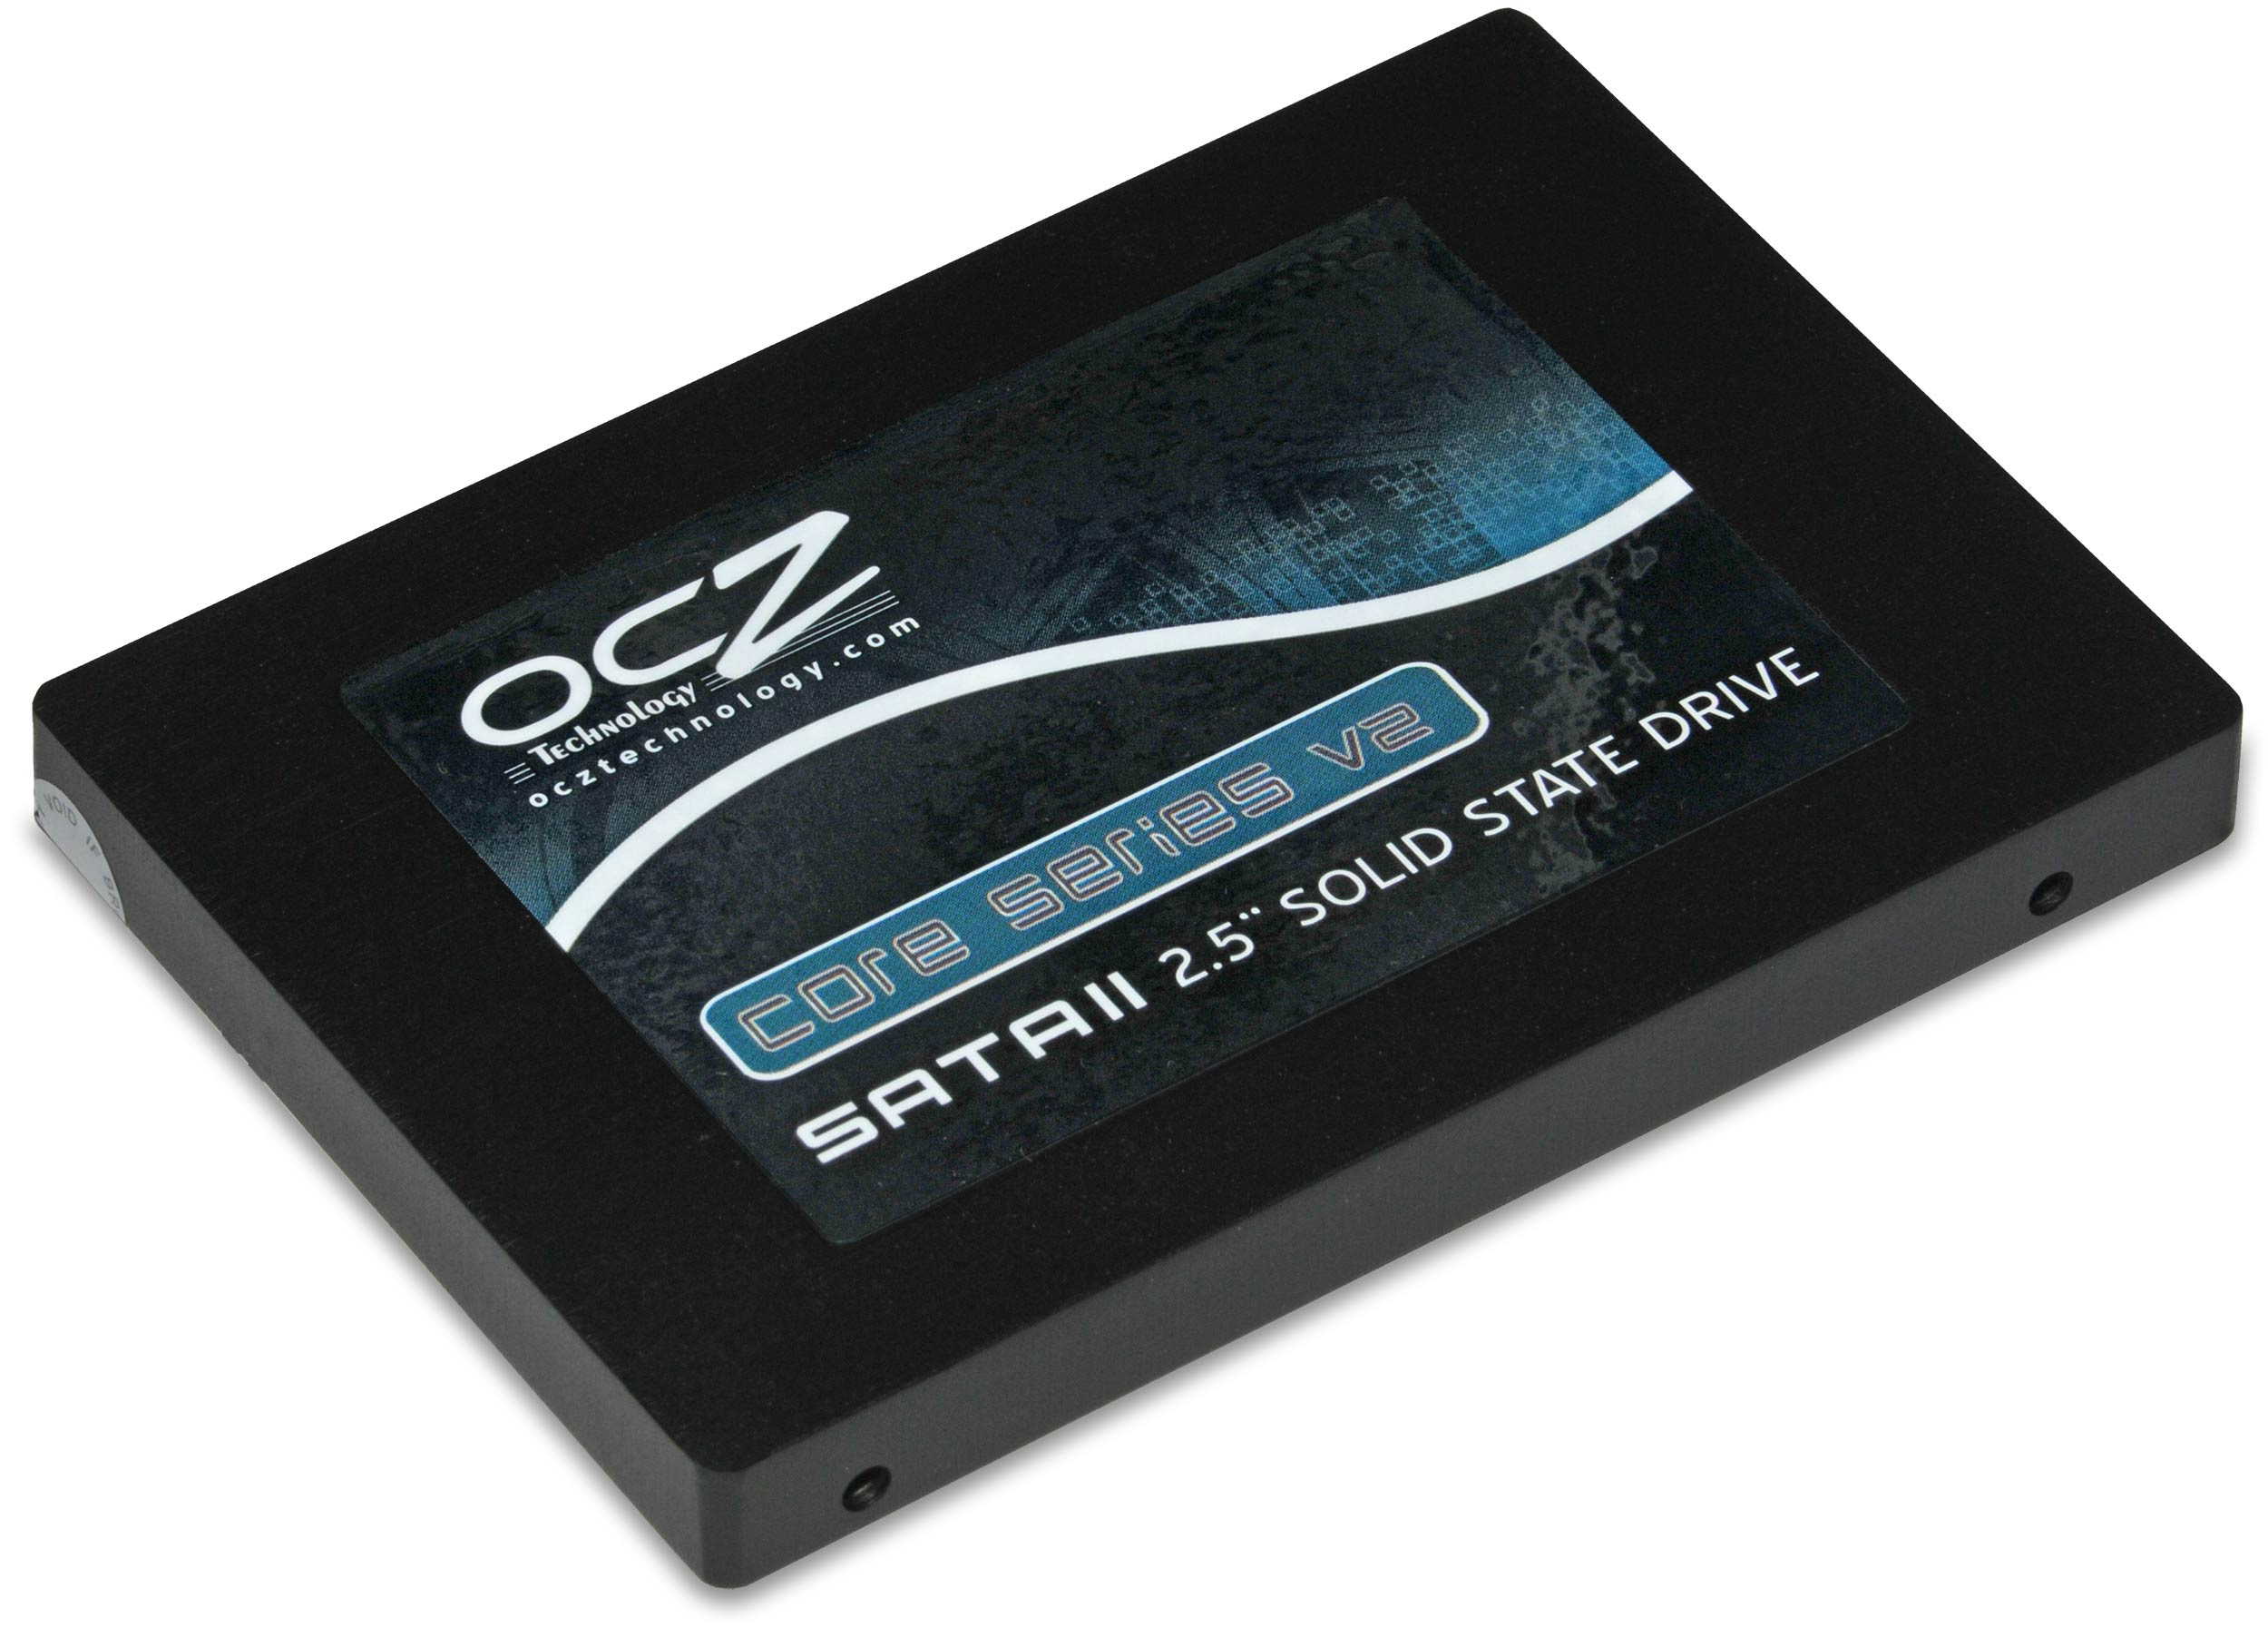 Ocz core series v2 sata ii solid state drives for Domon sata 3 64gb